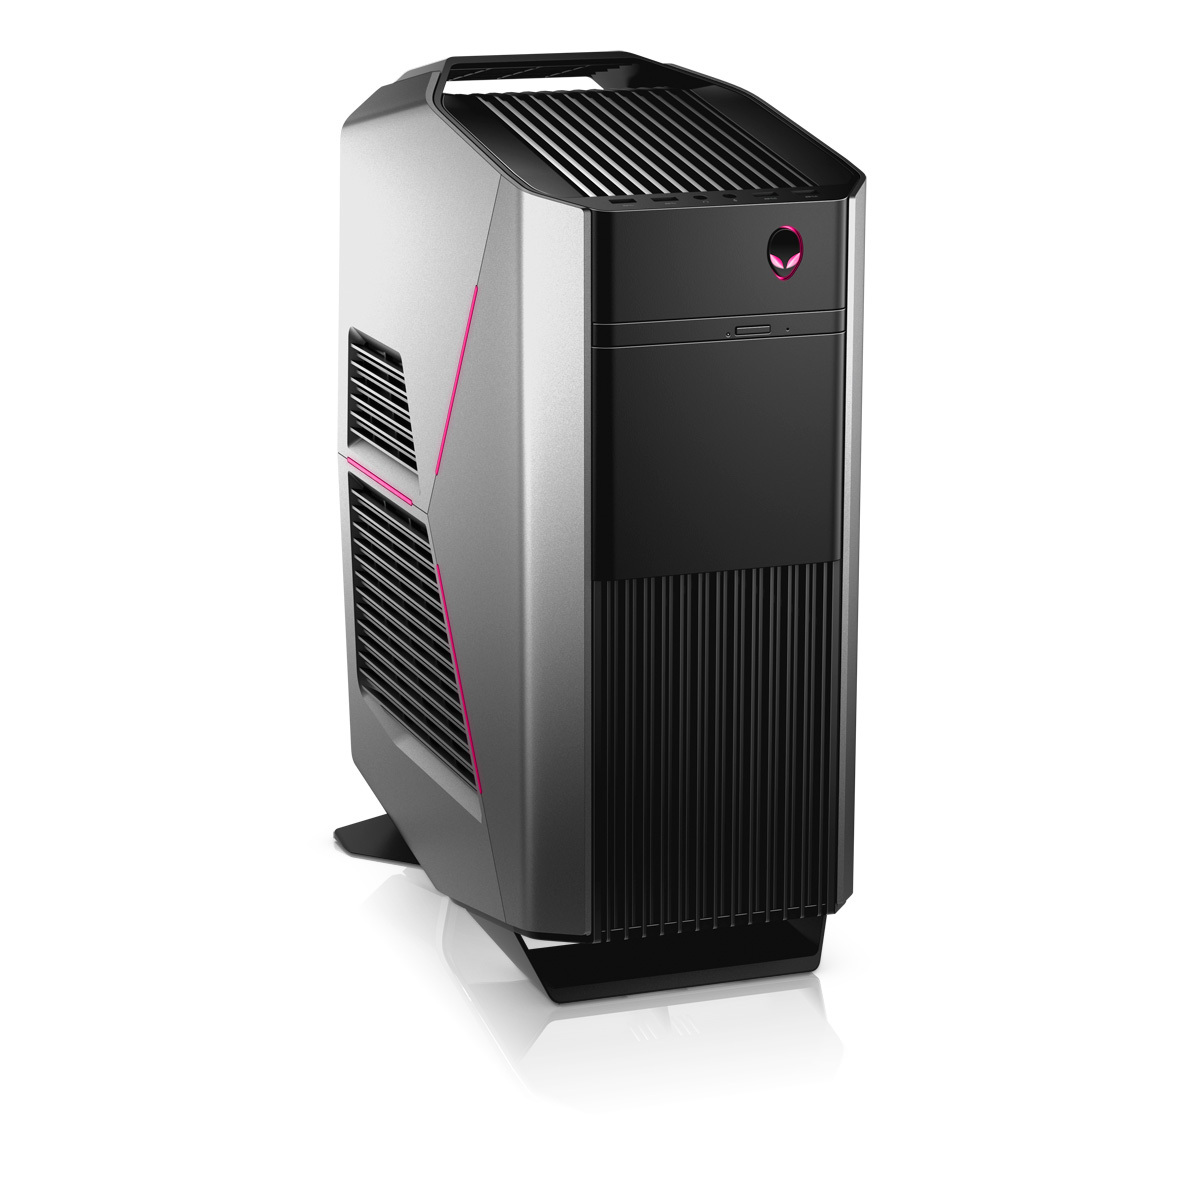 VR-ready Alienware Aurora midsize desktop now features 7th Gen Intel Core processors and new NVIDIA graphics. (Photo: Business Wire)